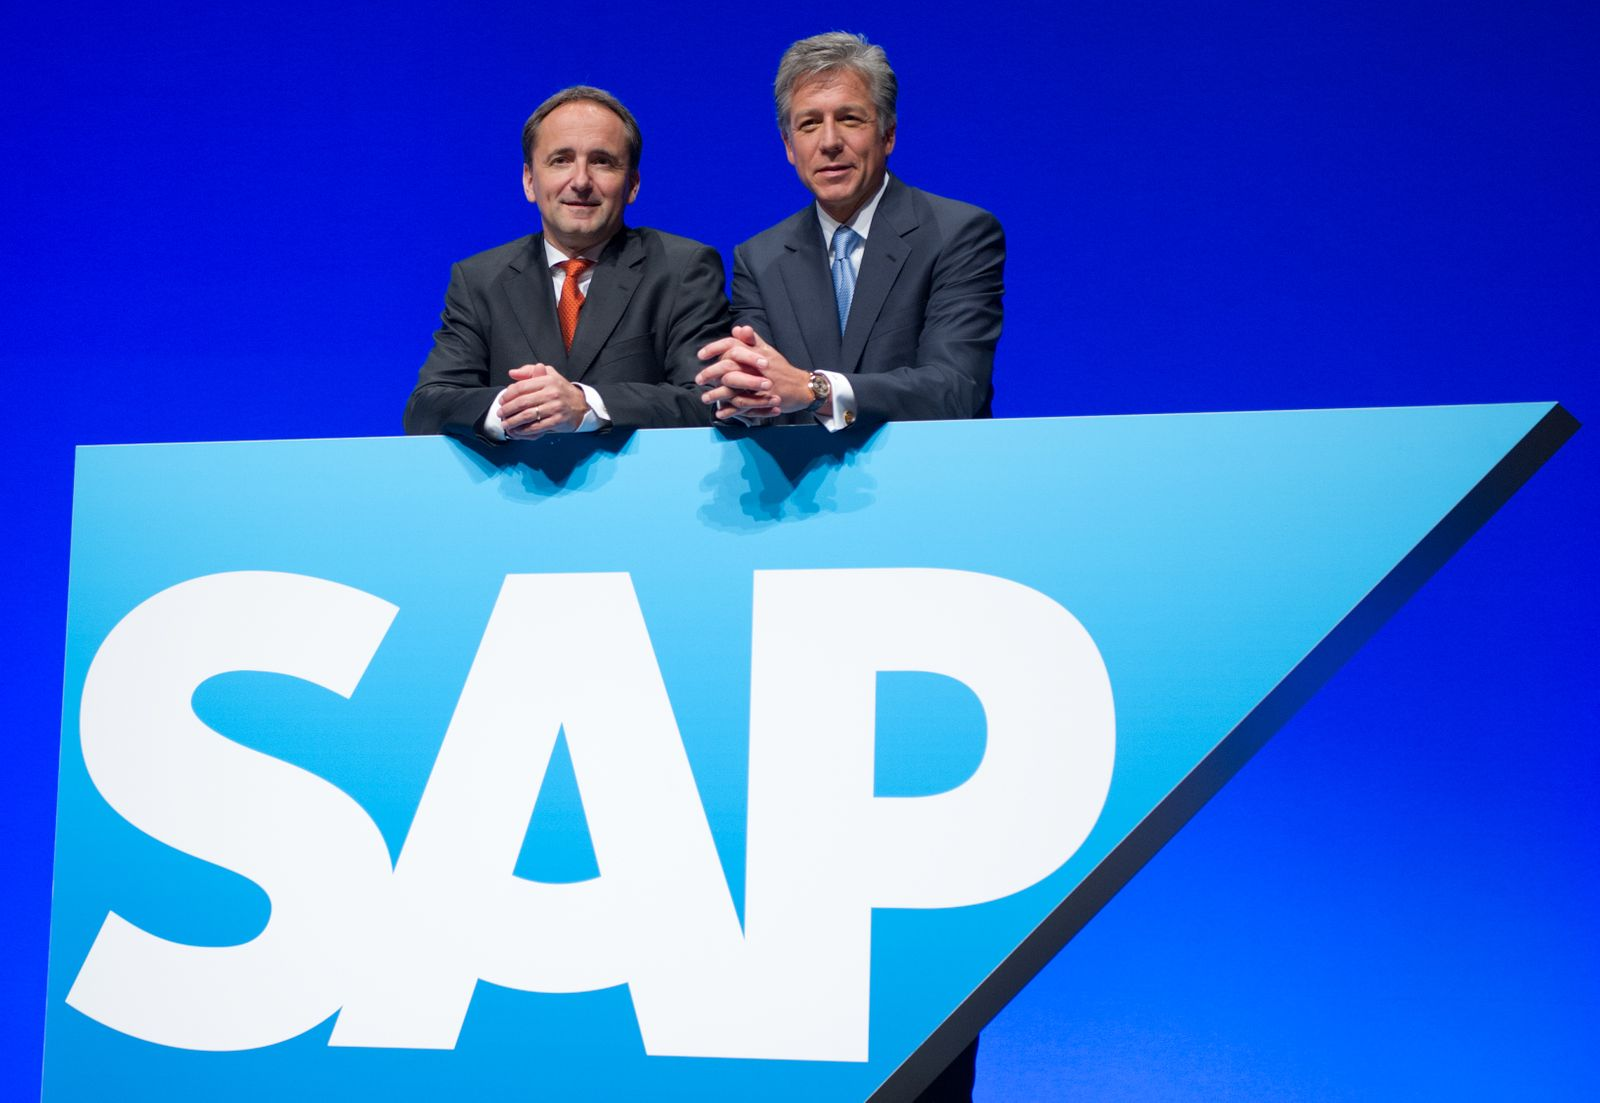 SAP / Bill McDermott / Jim Hagemann Snabe